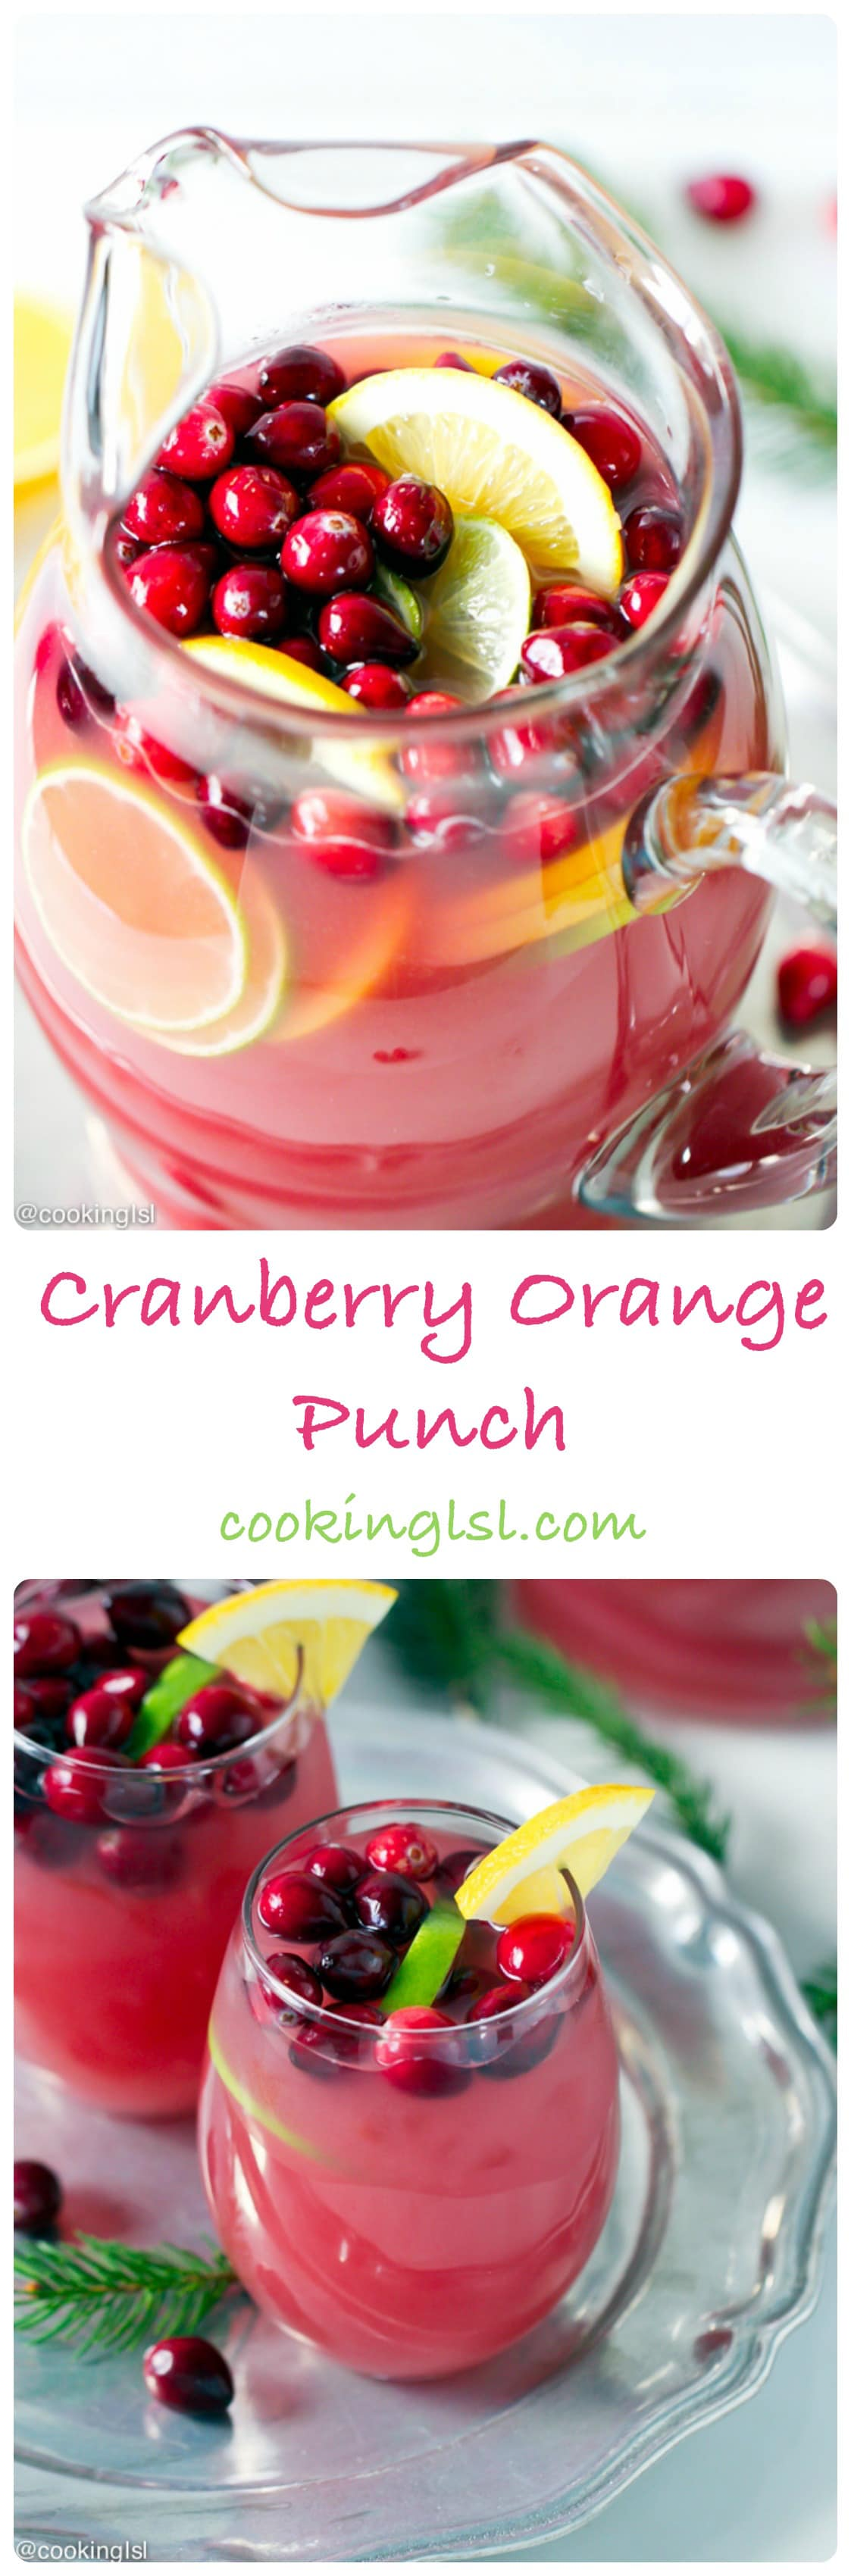 Cranberry Orange Punch - festive drink perfect for the holidays. Add some Gran Marnier and turn it into a great alcoholic drink.